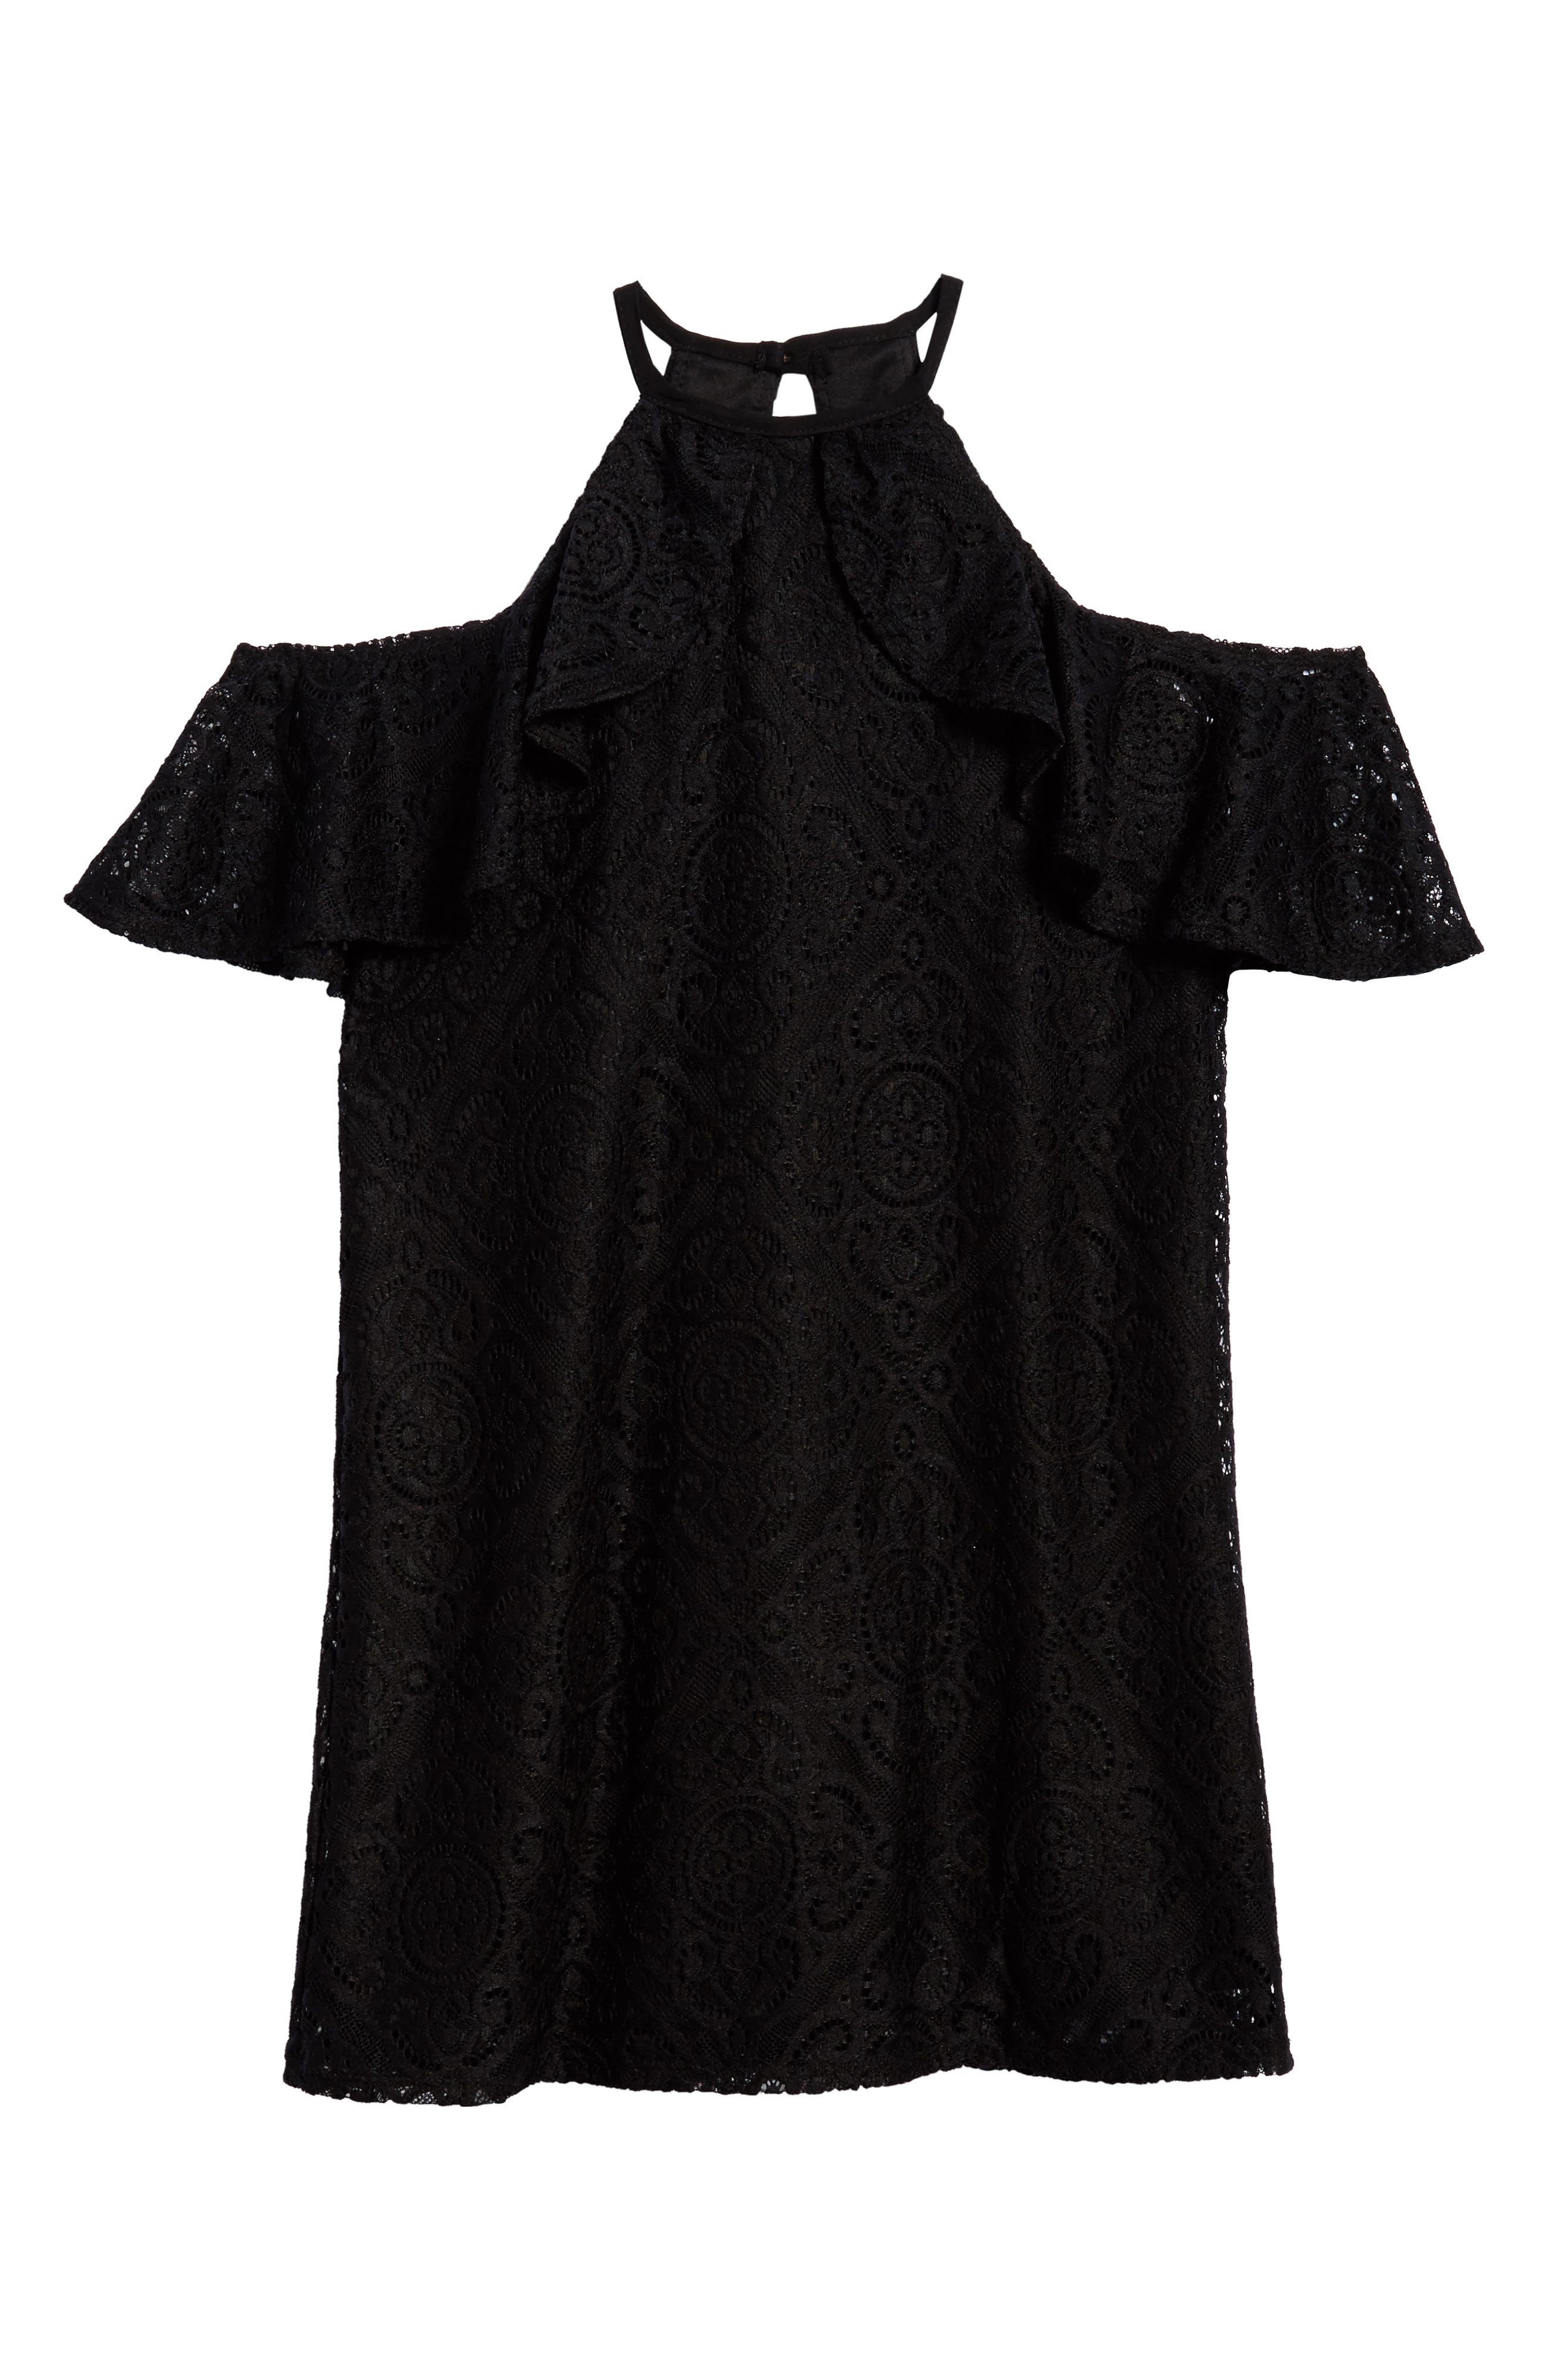 Alternate Image 1 Selected - Mia Chica Lace Ruffle Cold Shoulder Dress (Big Girls)